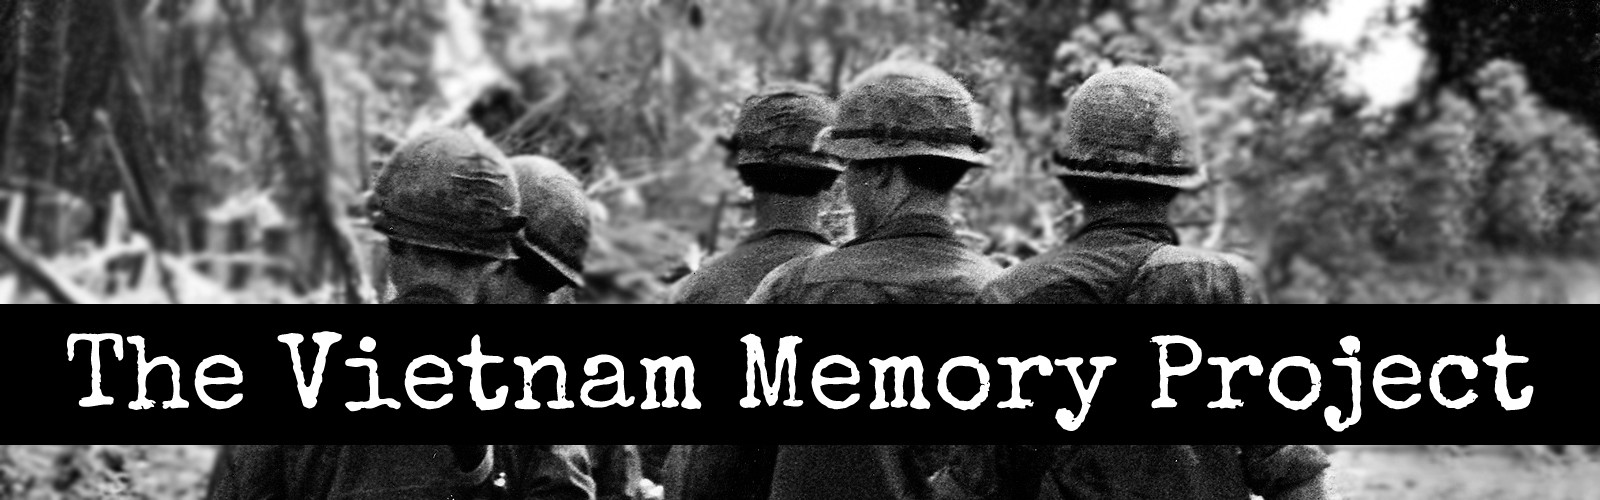 The Vietnam Memory Project